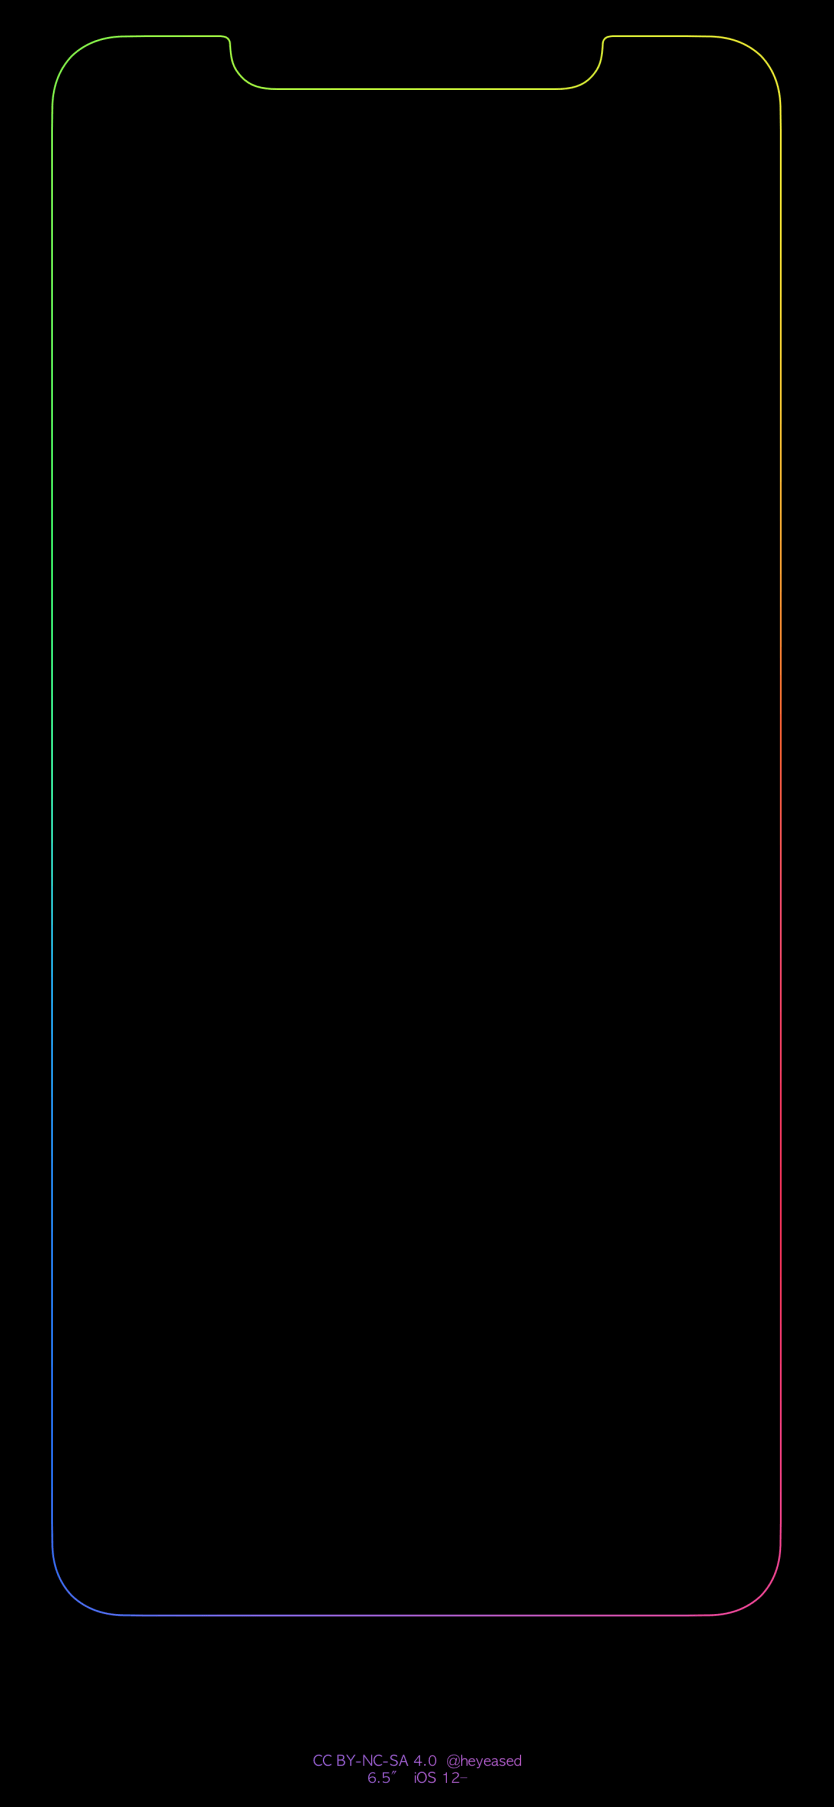 Iphone 11 Pro Border Wallpaper : iphone, border, wallpaper, Border, IPhone, Wallpapers, Wallpaper